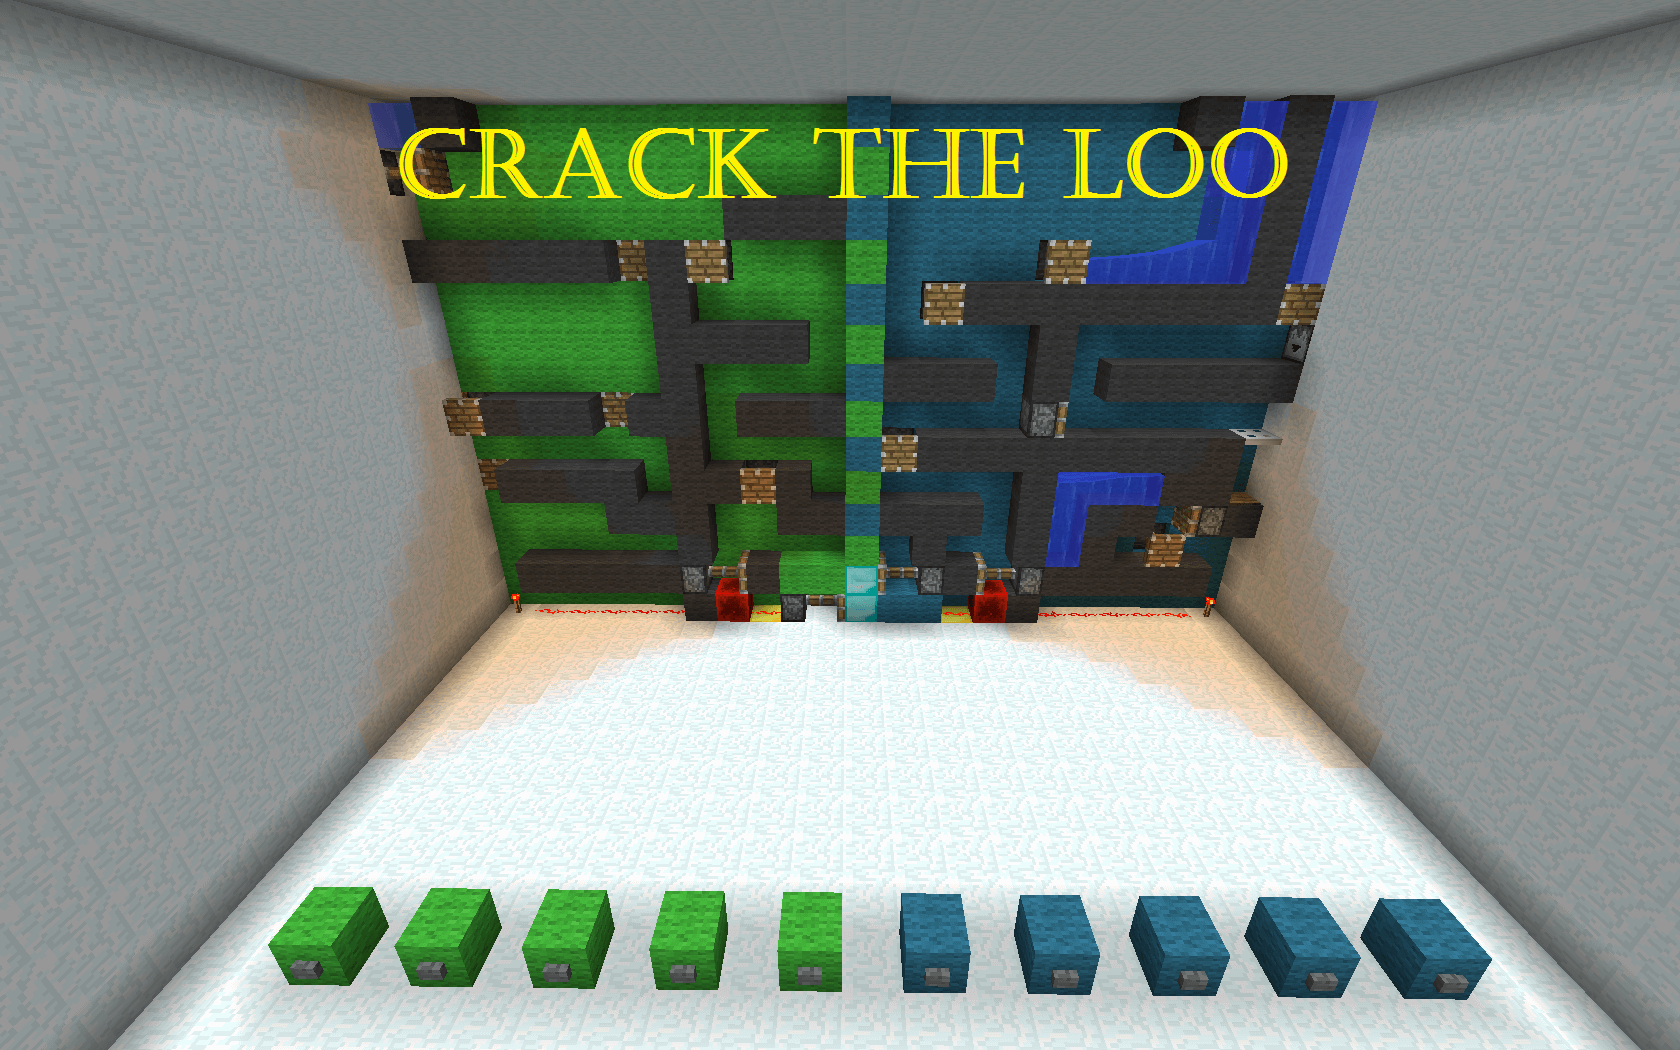 Crack the Loo скриншот 1